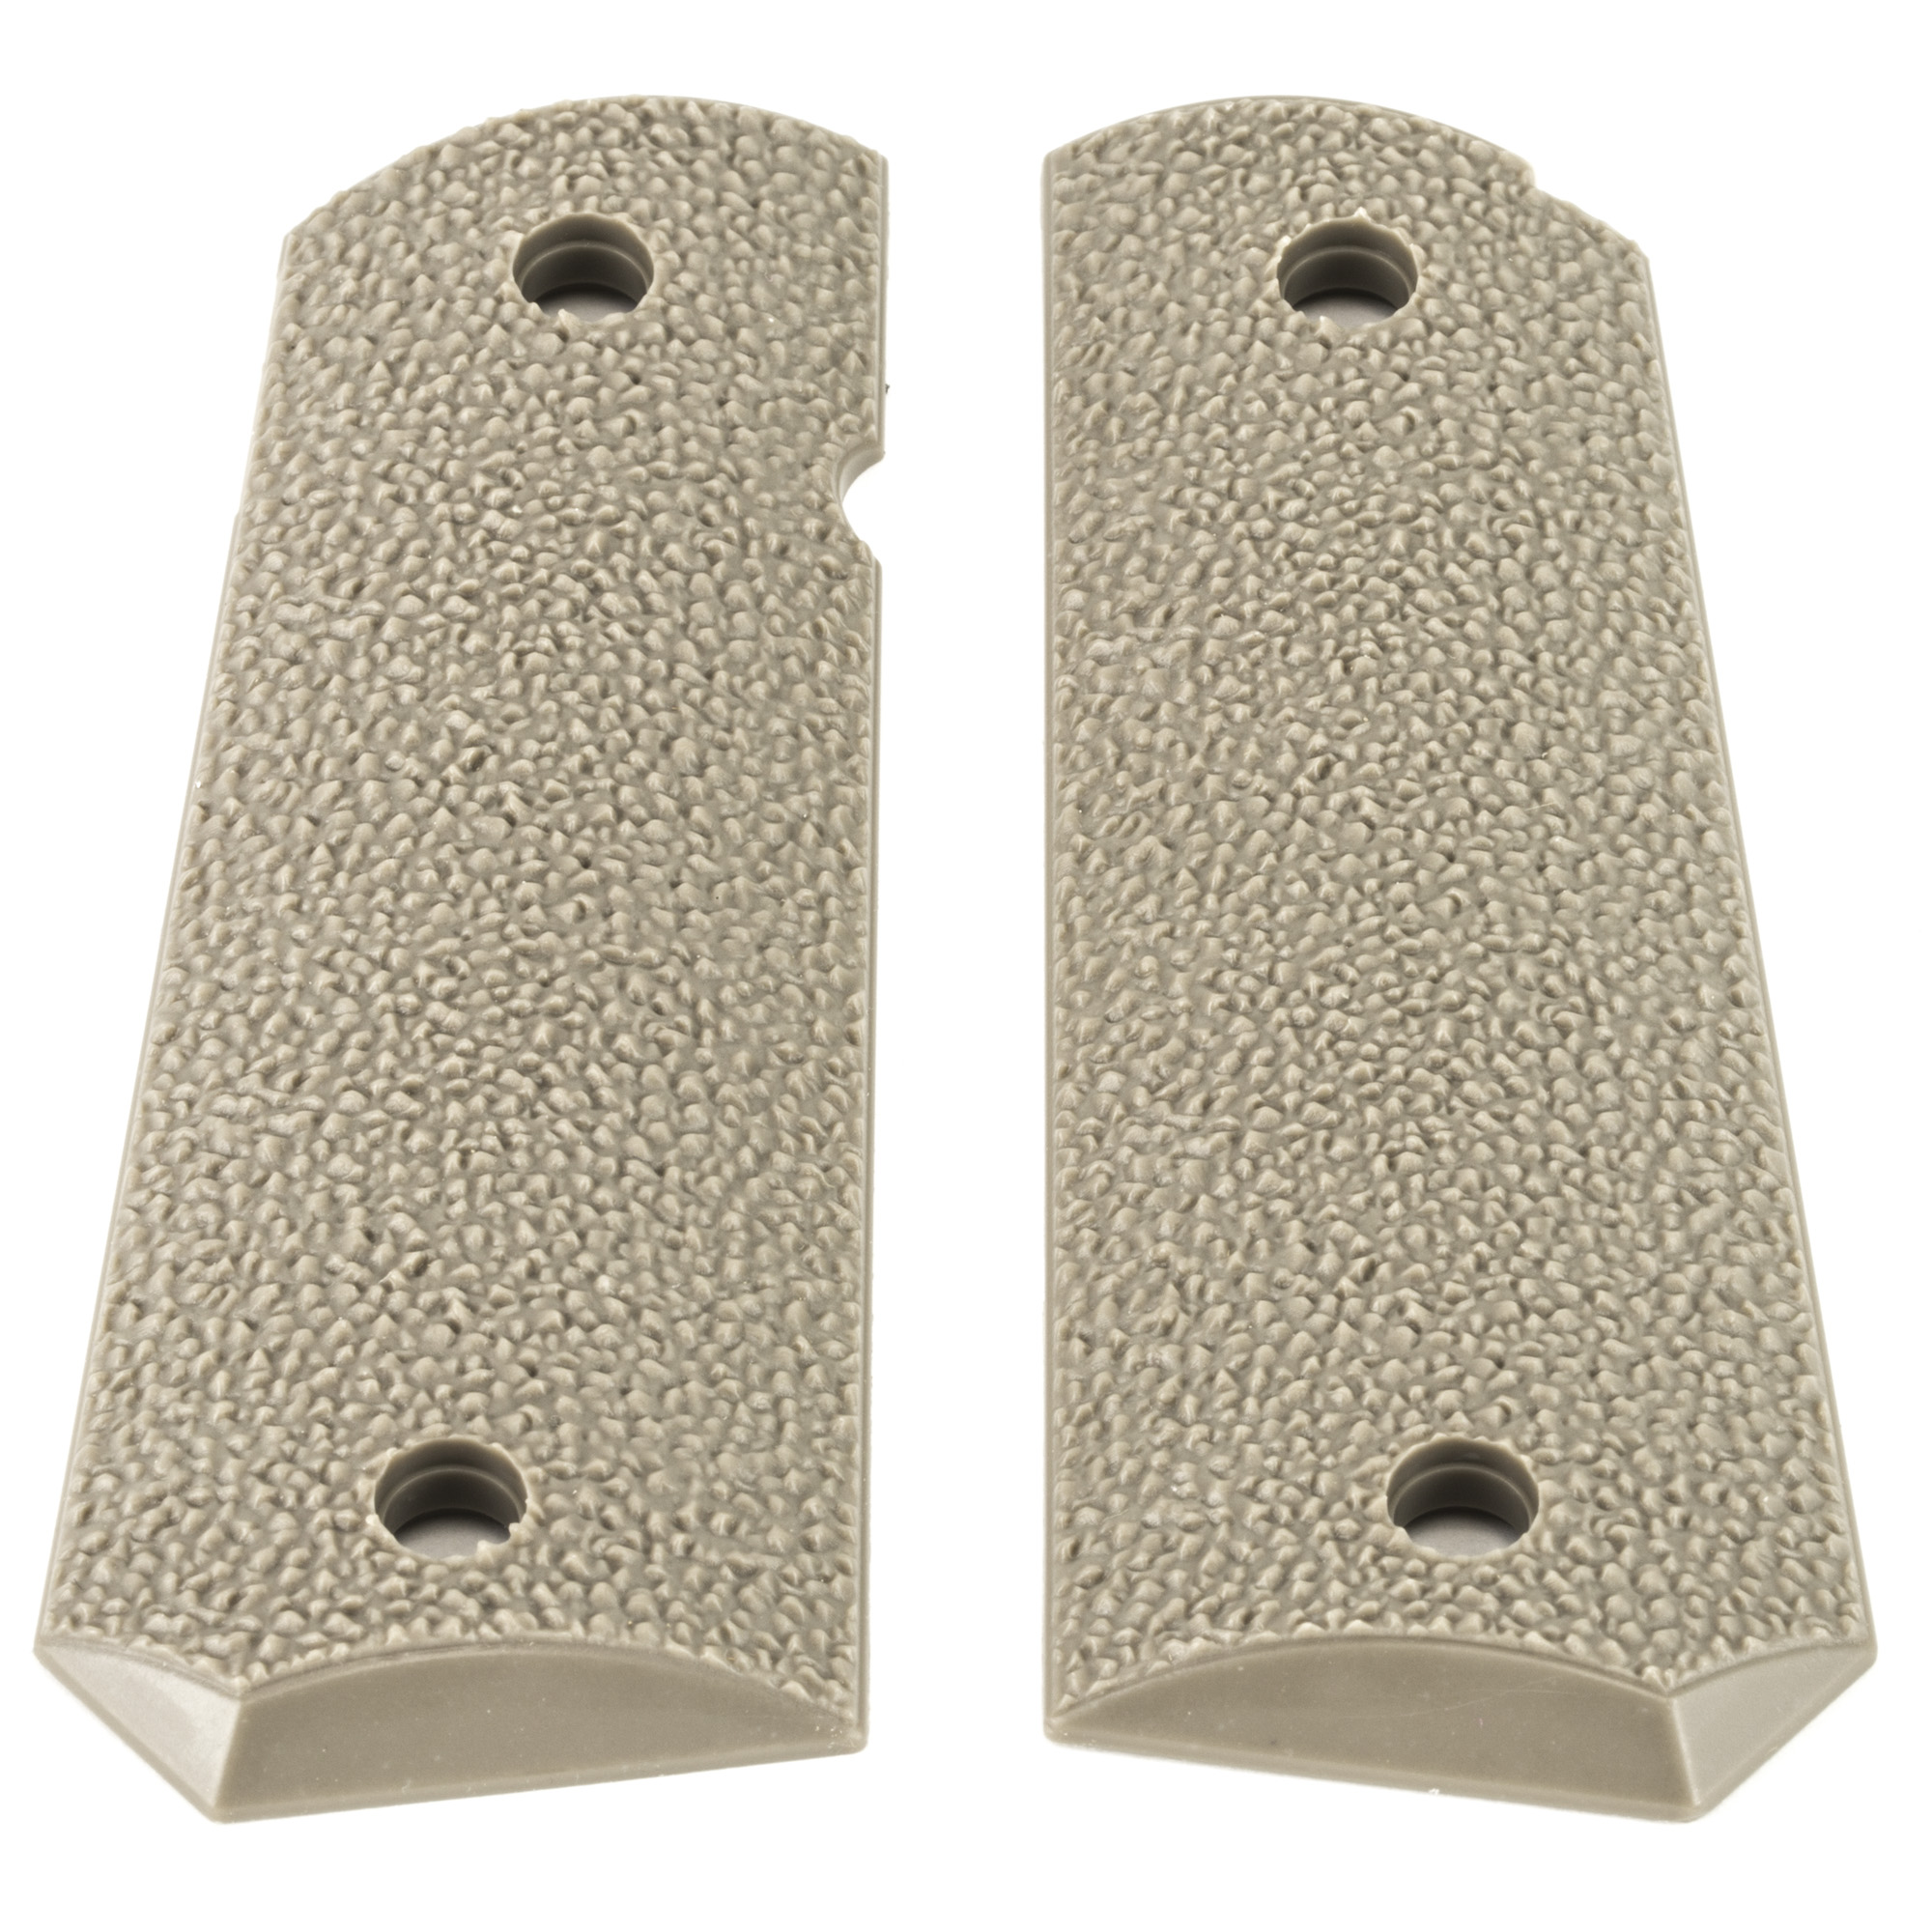 "ERGO's XTR Tapered Bottom Hard Rubber 1911 Grip is a heavily textured"" minimally abrasive grip for Standard 1911 frames. Its thin profile attaches with standard grip screws and is designed to accommodate ambidextrous safety options."